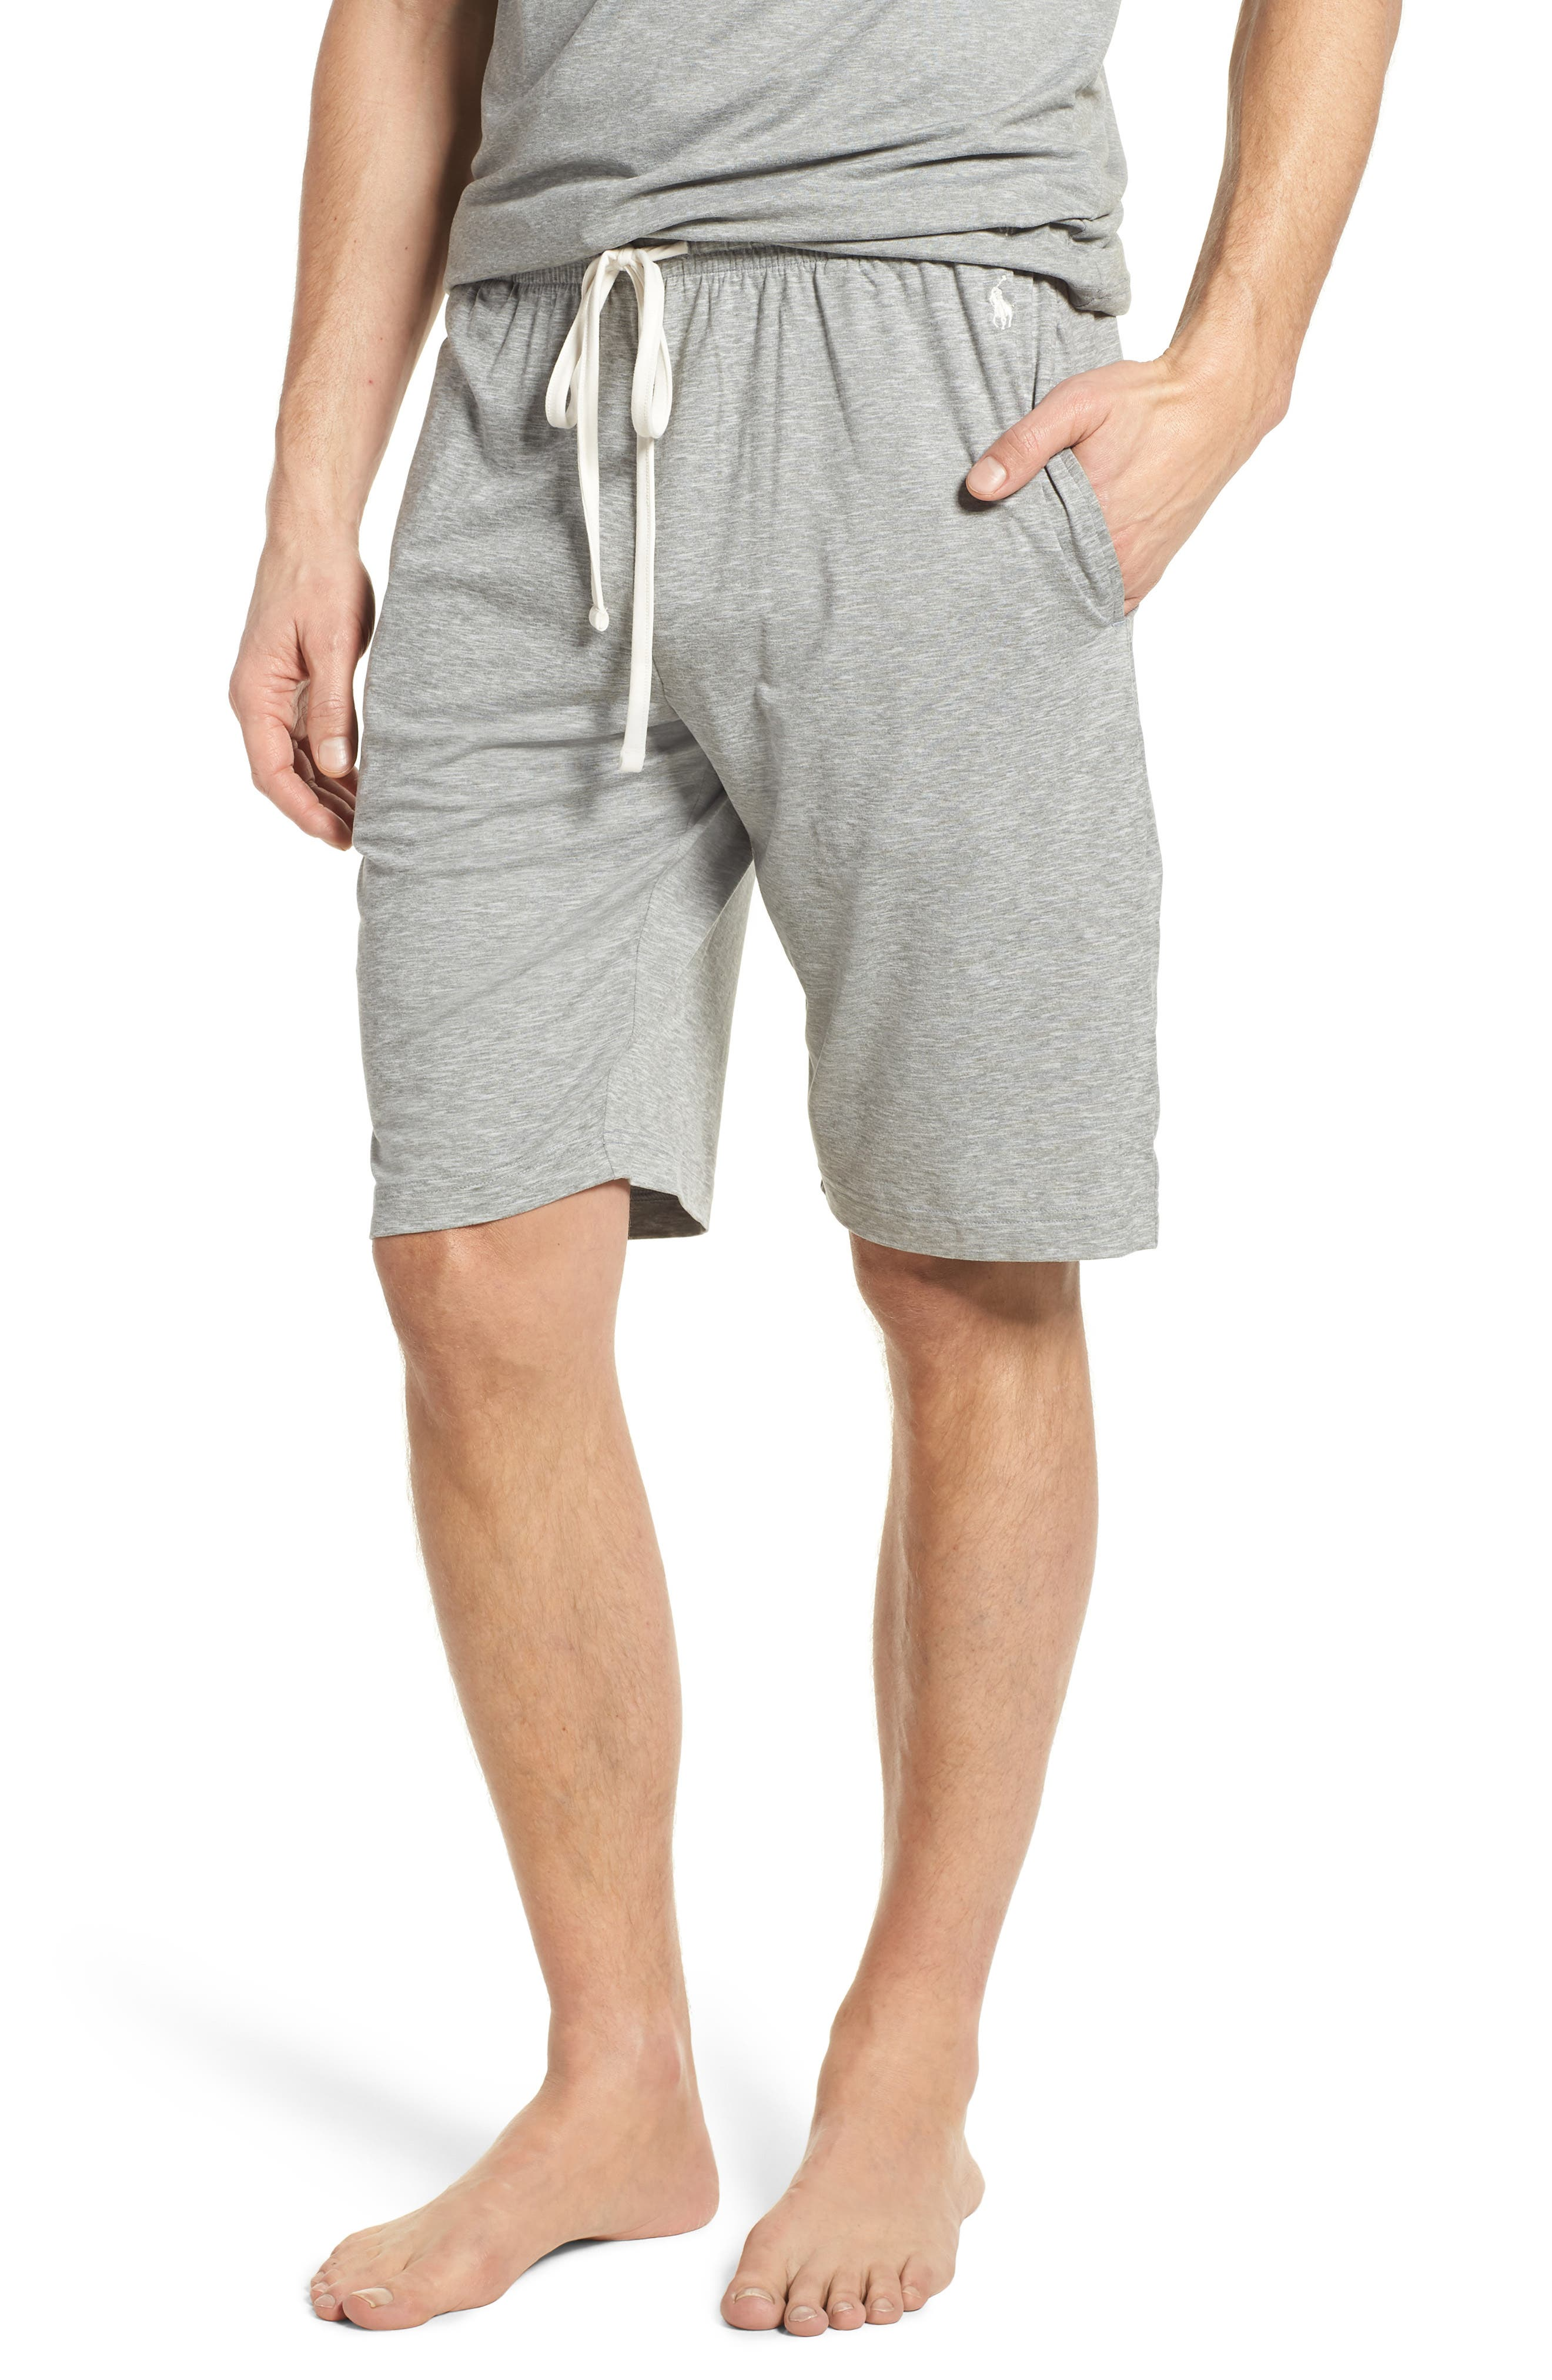 Therma Lounge Shorts,                             Main thumbnail 1, color,                             Andover Heather/ Nevis